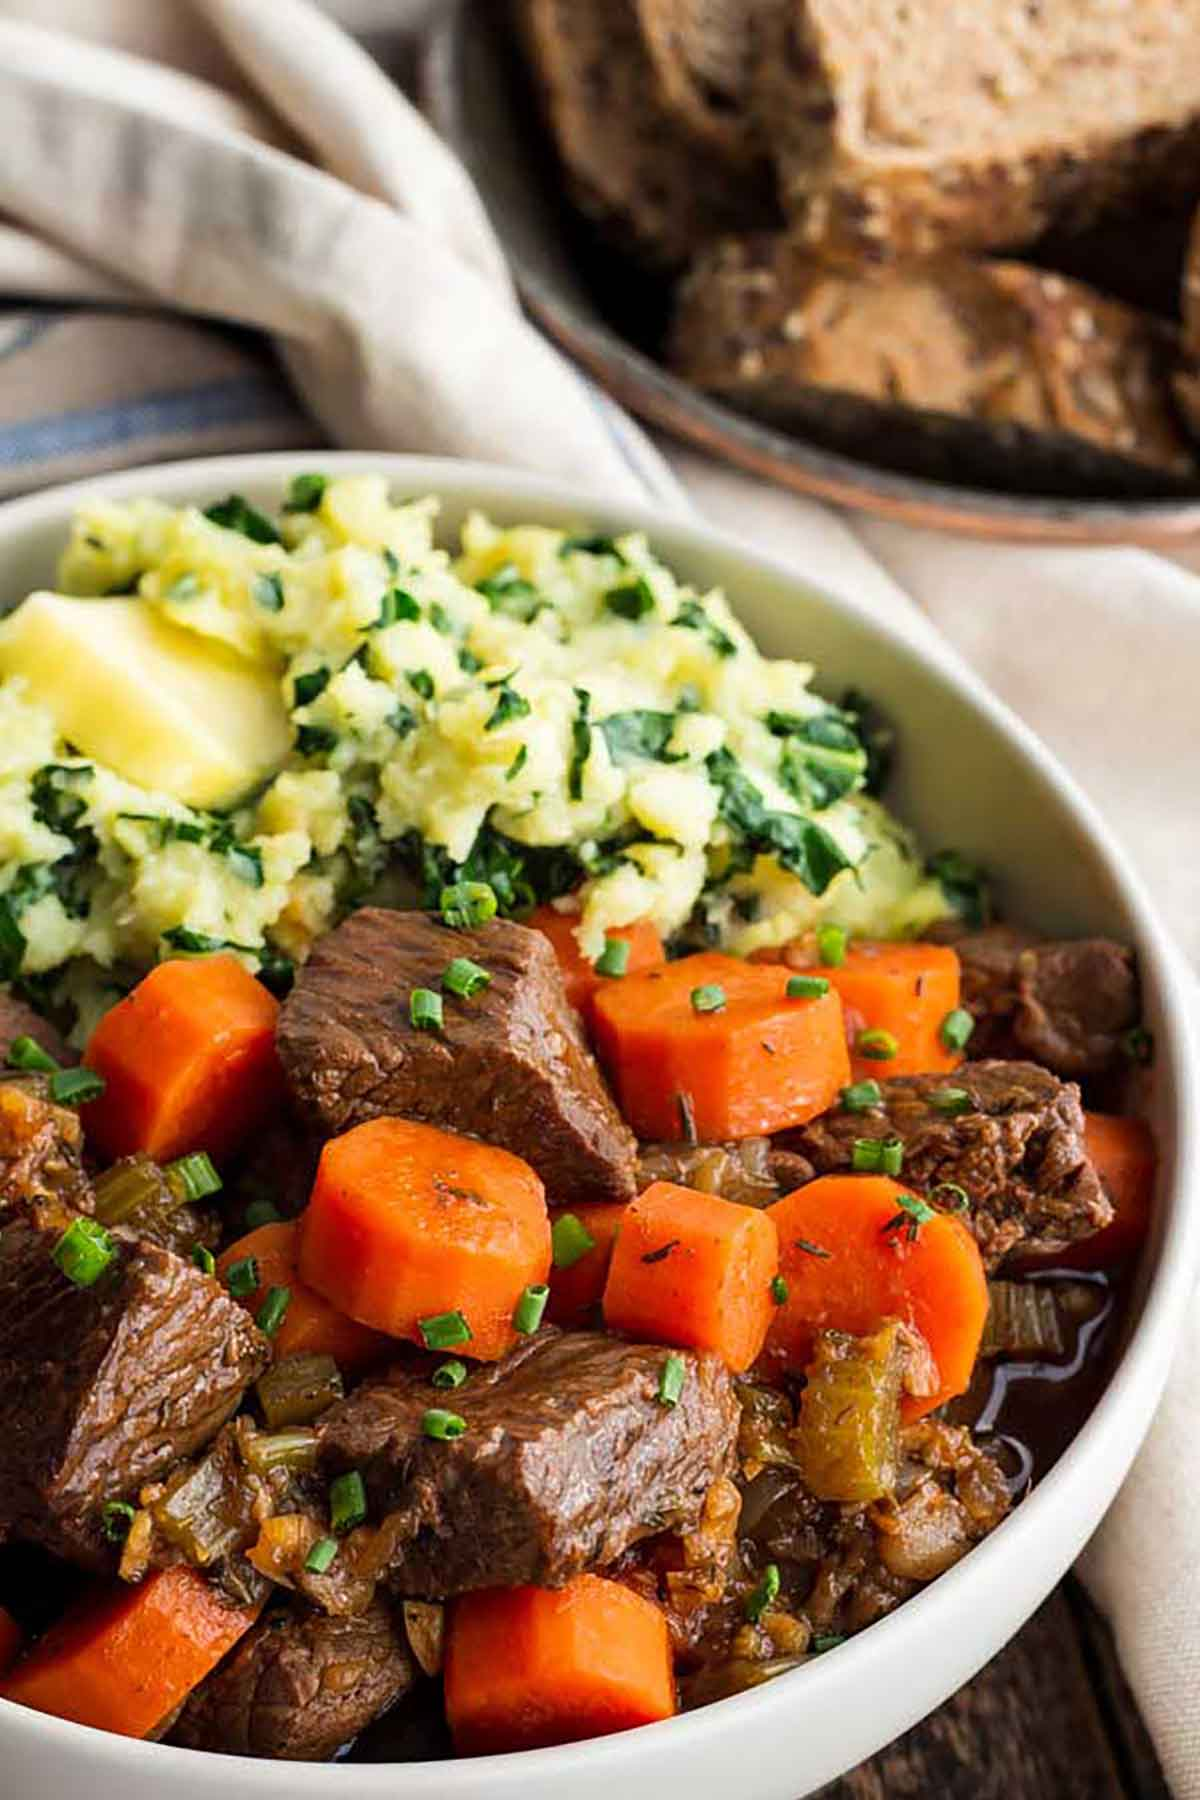 A bowl of Guinness beef stew with carrots.